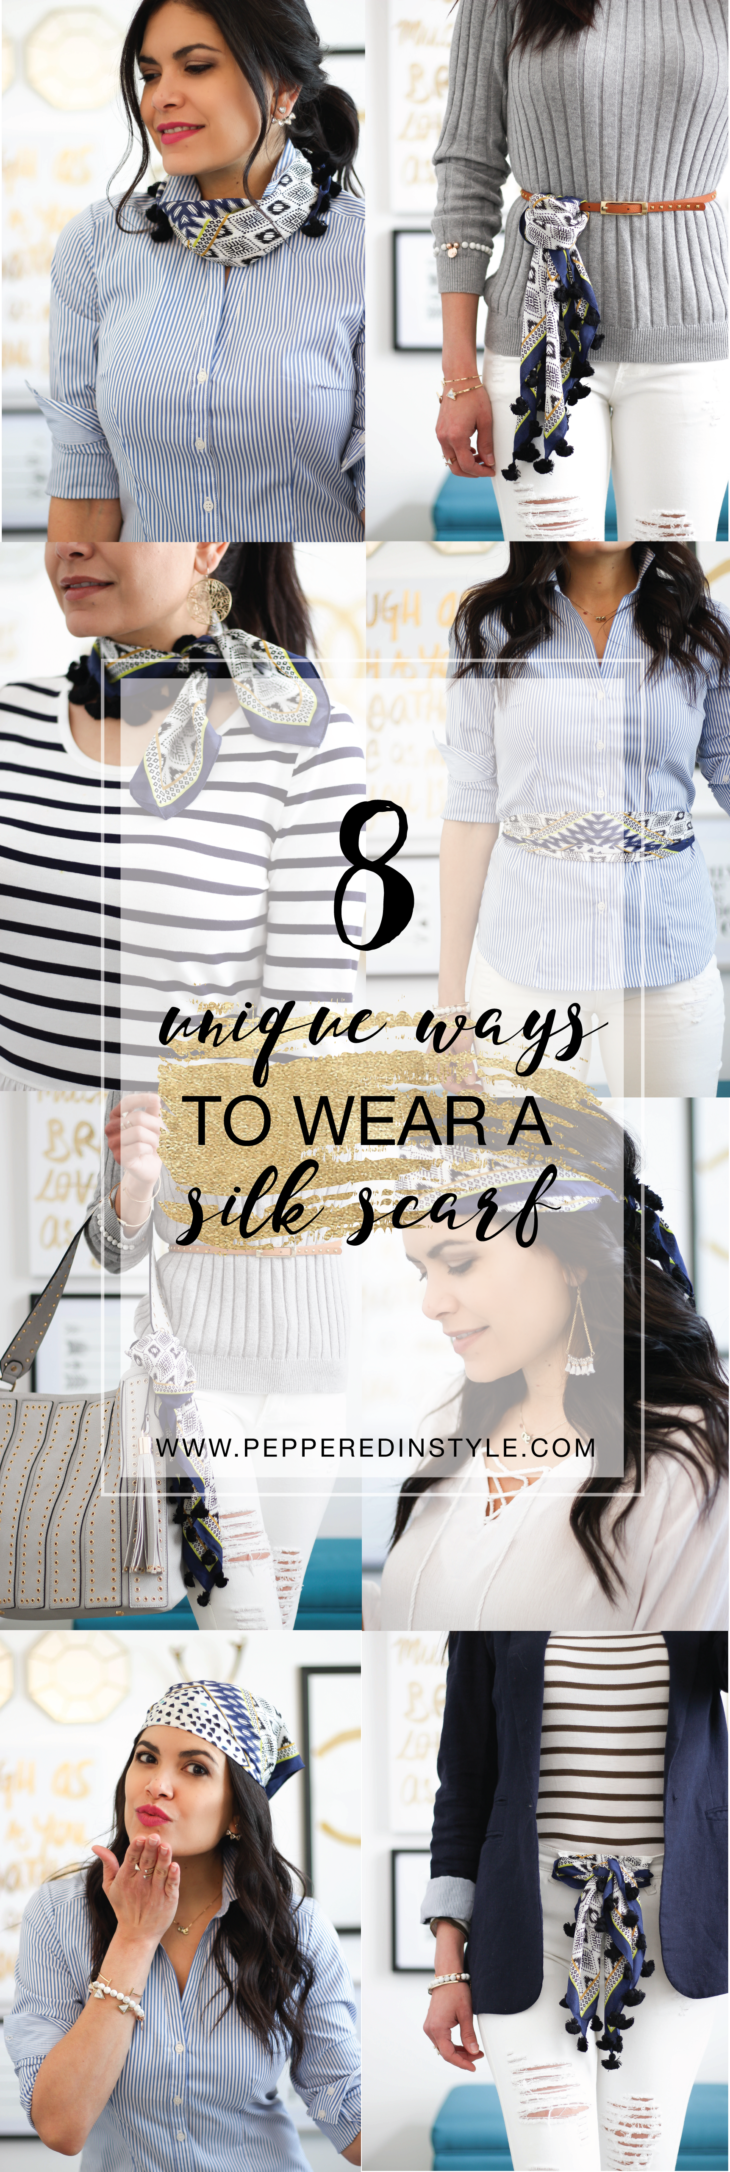 8 Unique Ways to Wear a Silk Scarf